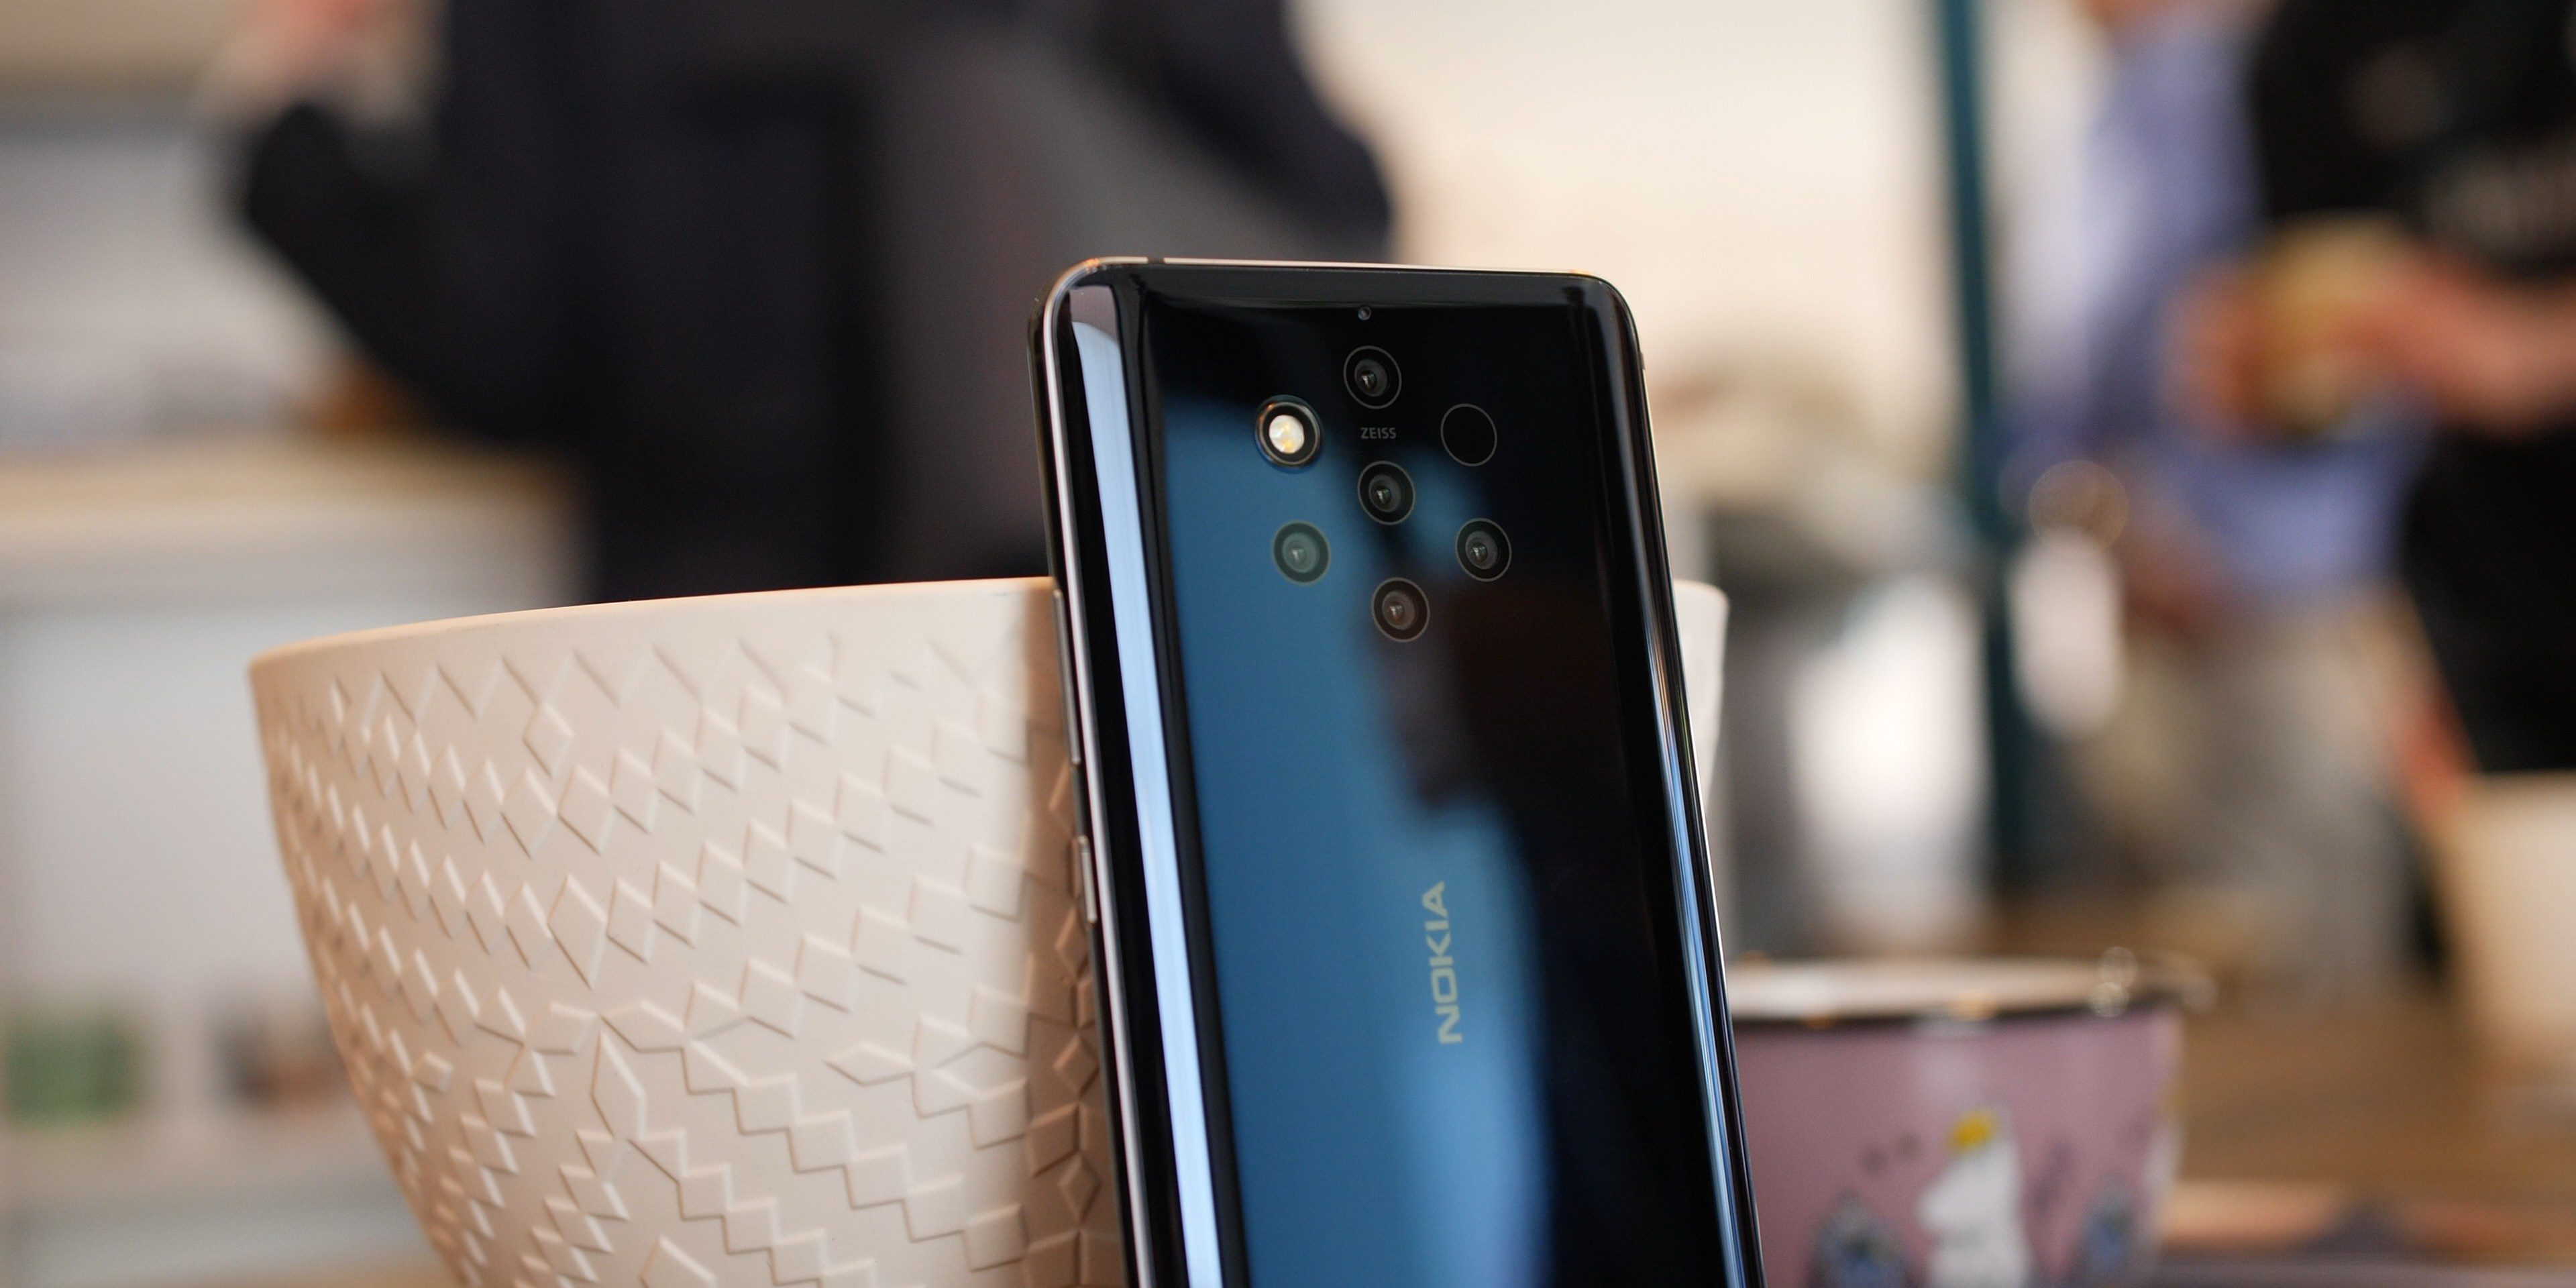 Nokia 9 Pureview sports five cameras and is now on sale $100 worth of extras: $500 (Reg. $600)